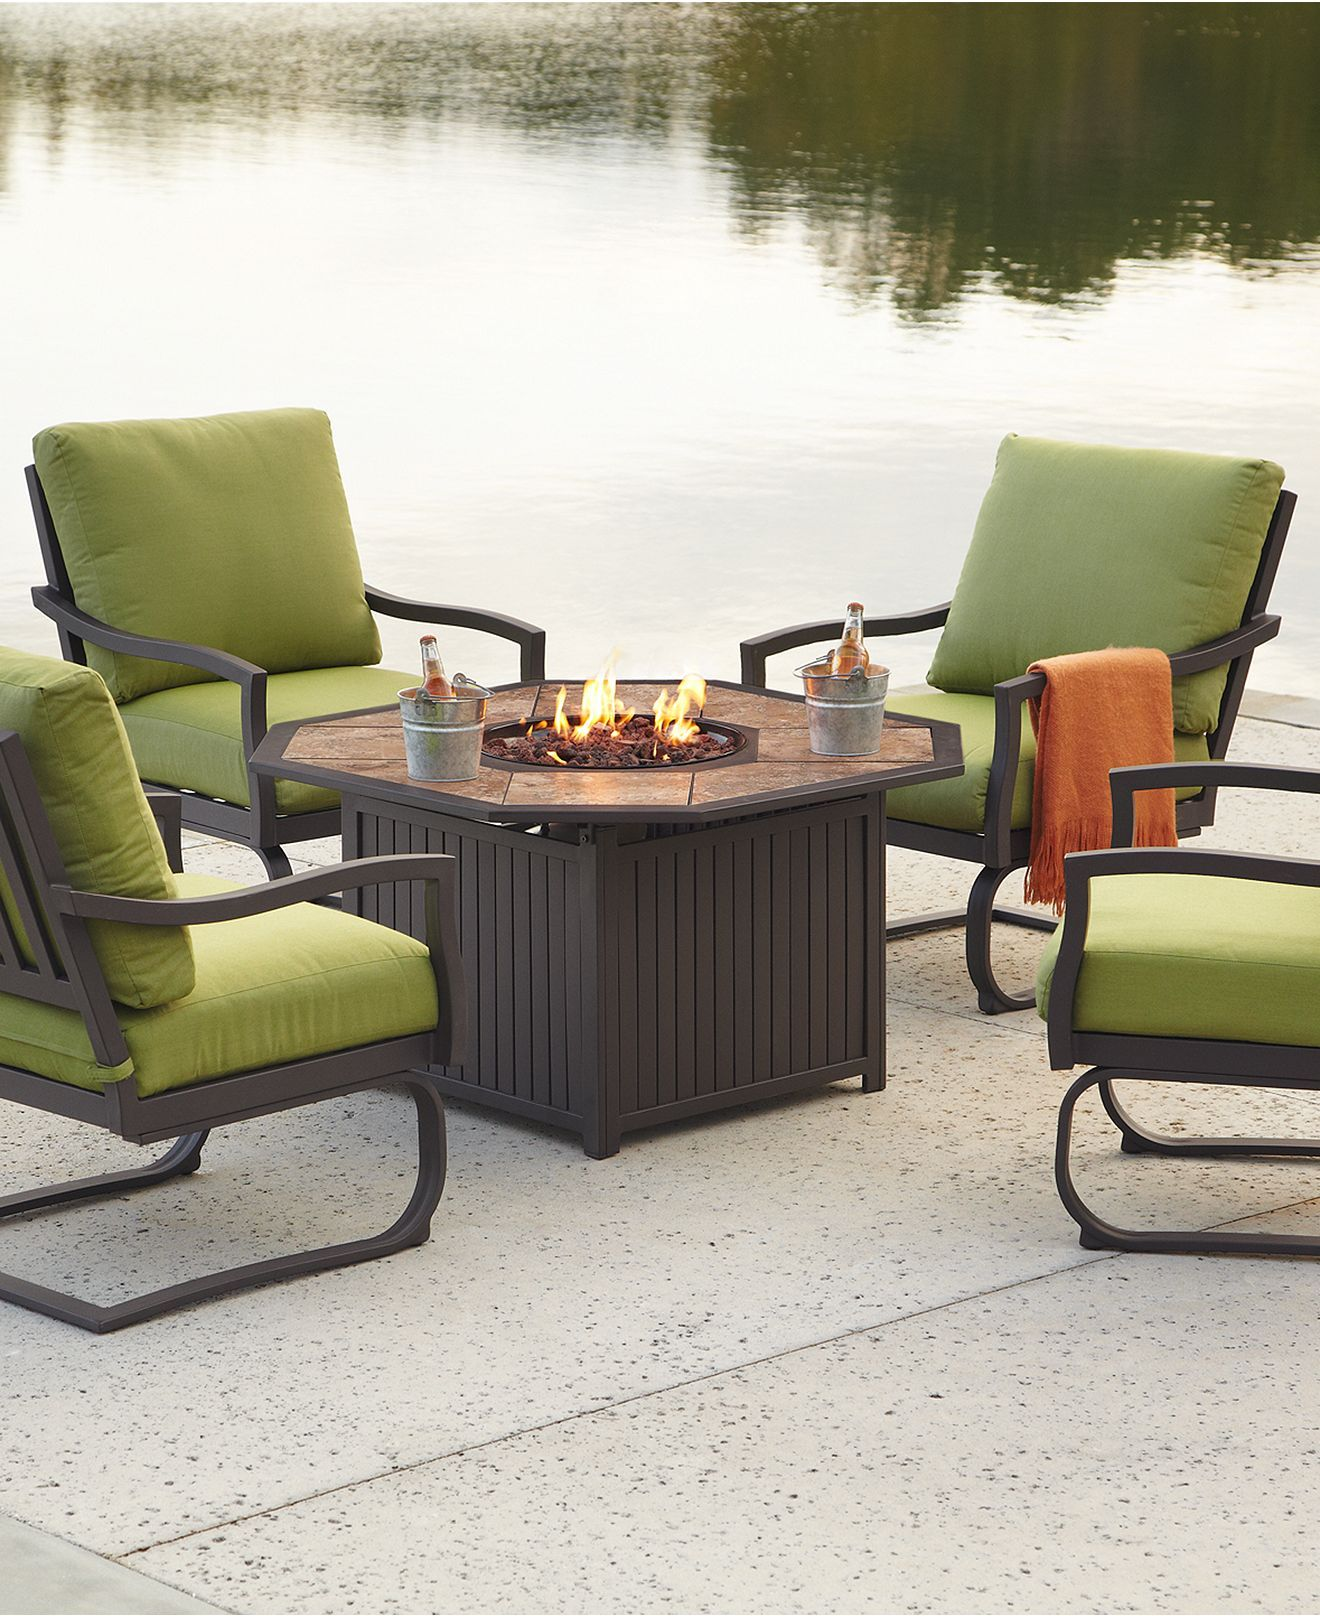 Macys Outdoor Furniture With Fire Pit